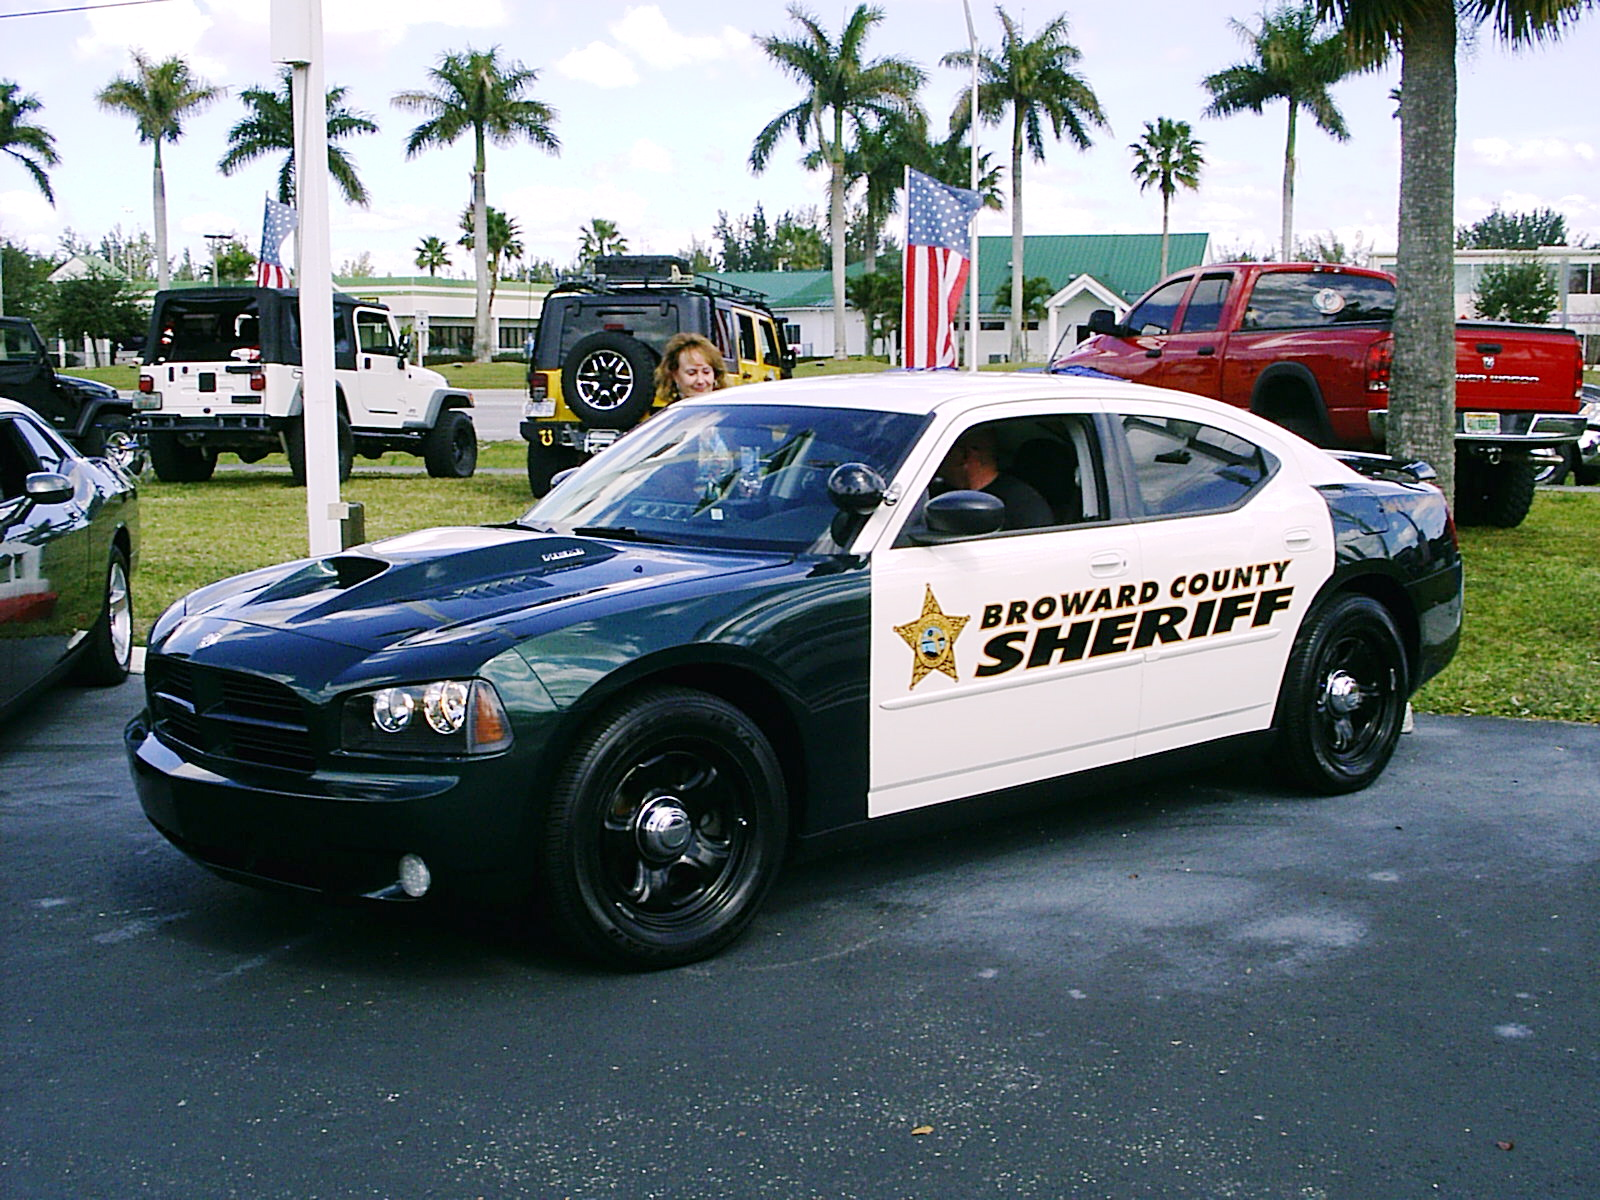 Sheriff S Cars Palm Gardens Nevada